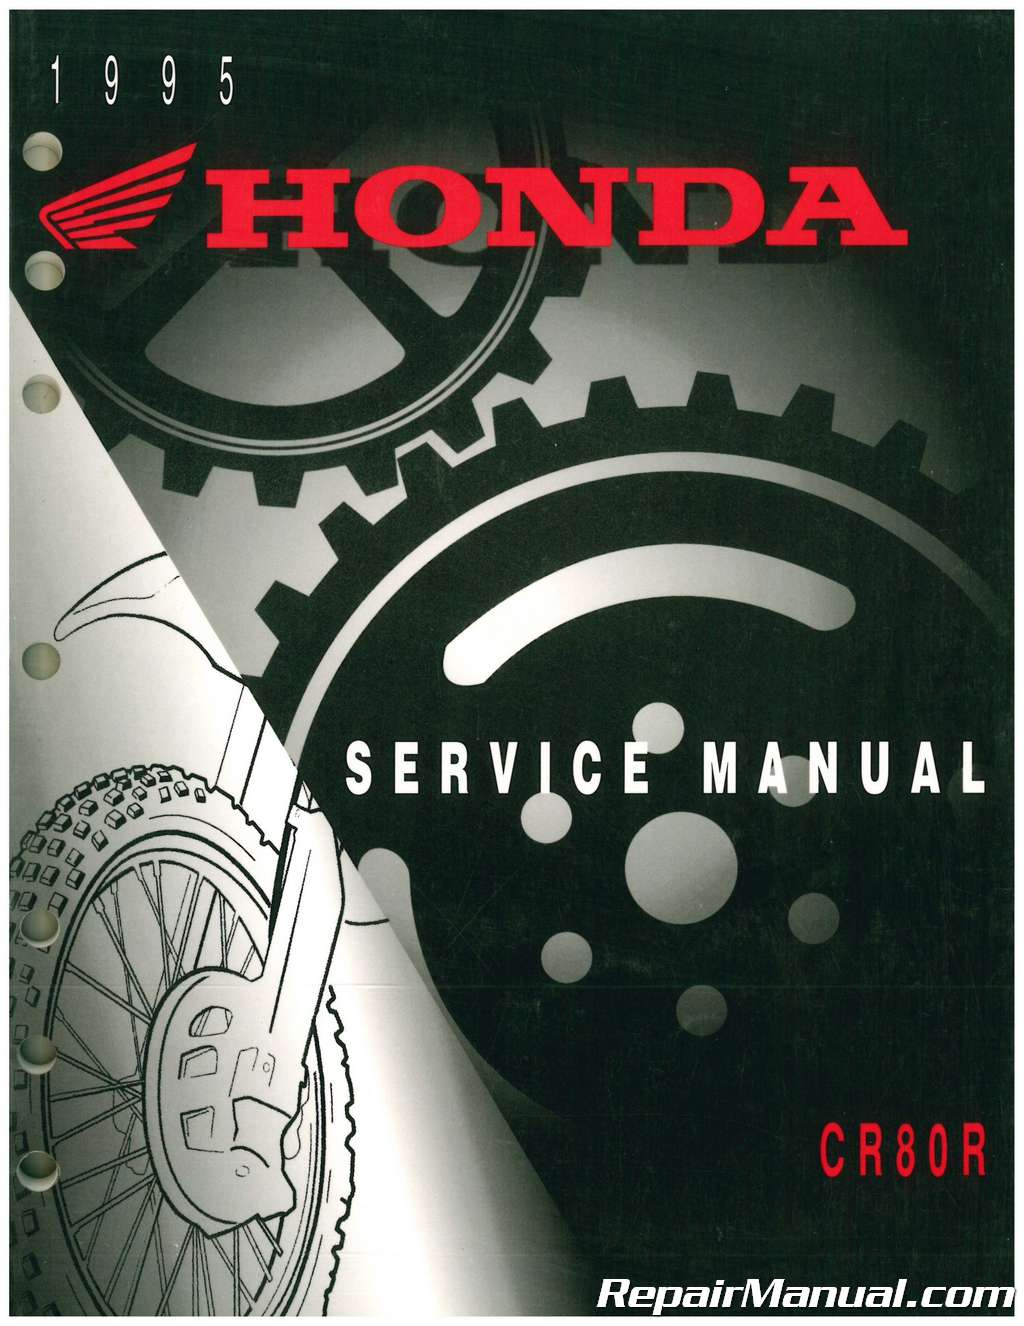 Used 1995 Honda Cr80r Service Manual